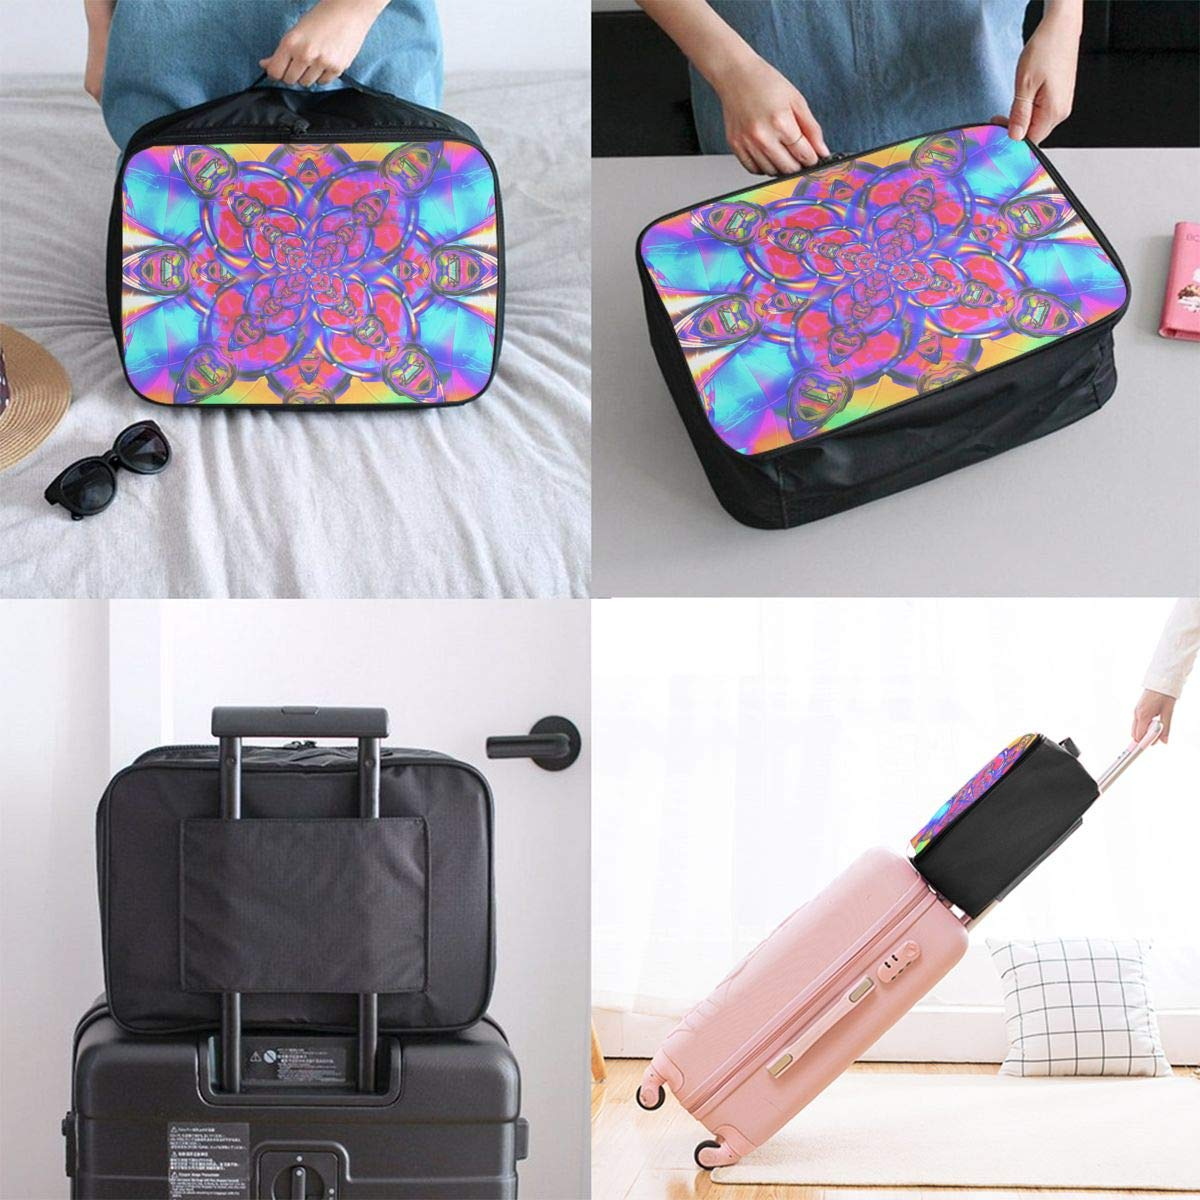 Container And Contents Mandala Travel Duffel Bag Waterproof Fashion Lightweight Large Capacity Portable Luggage Bag